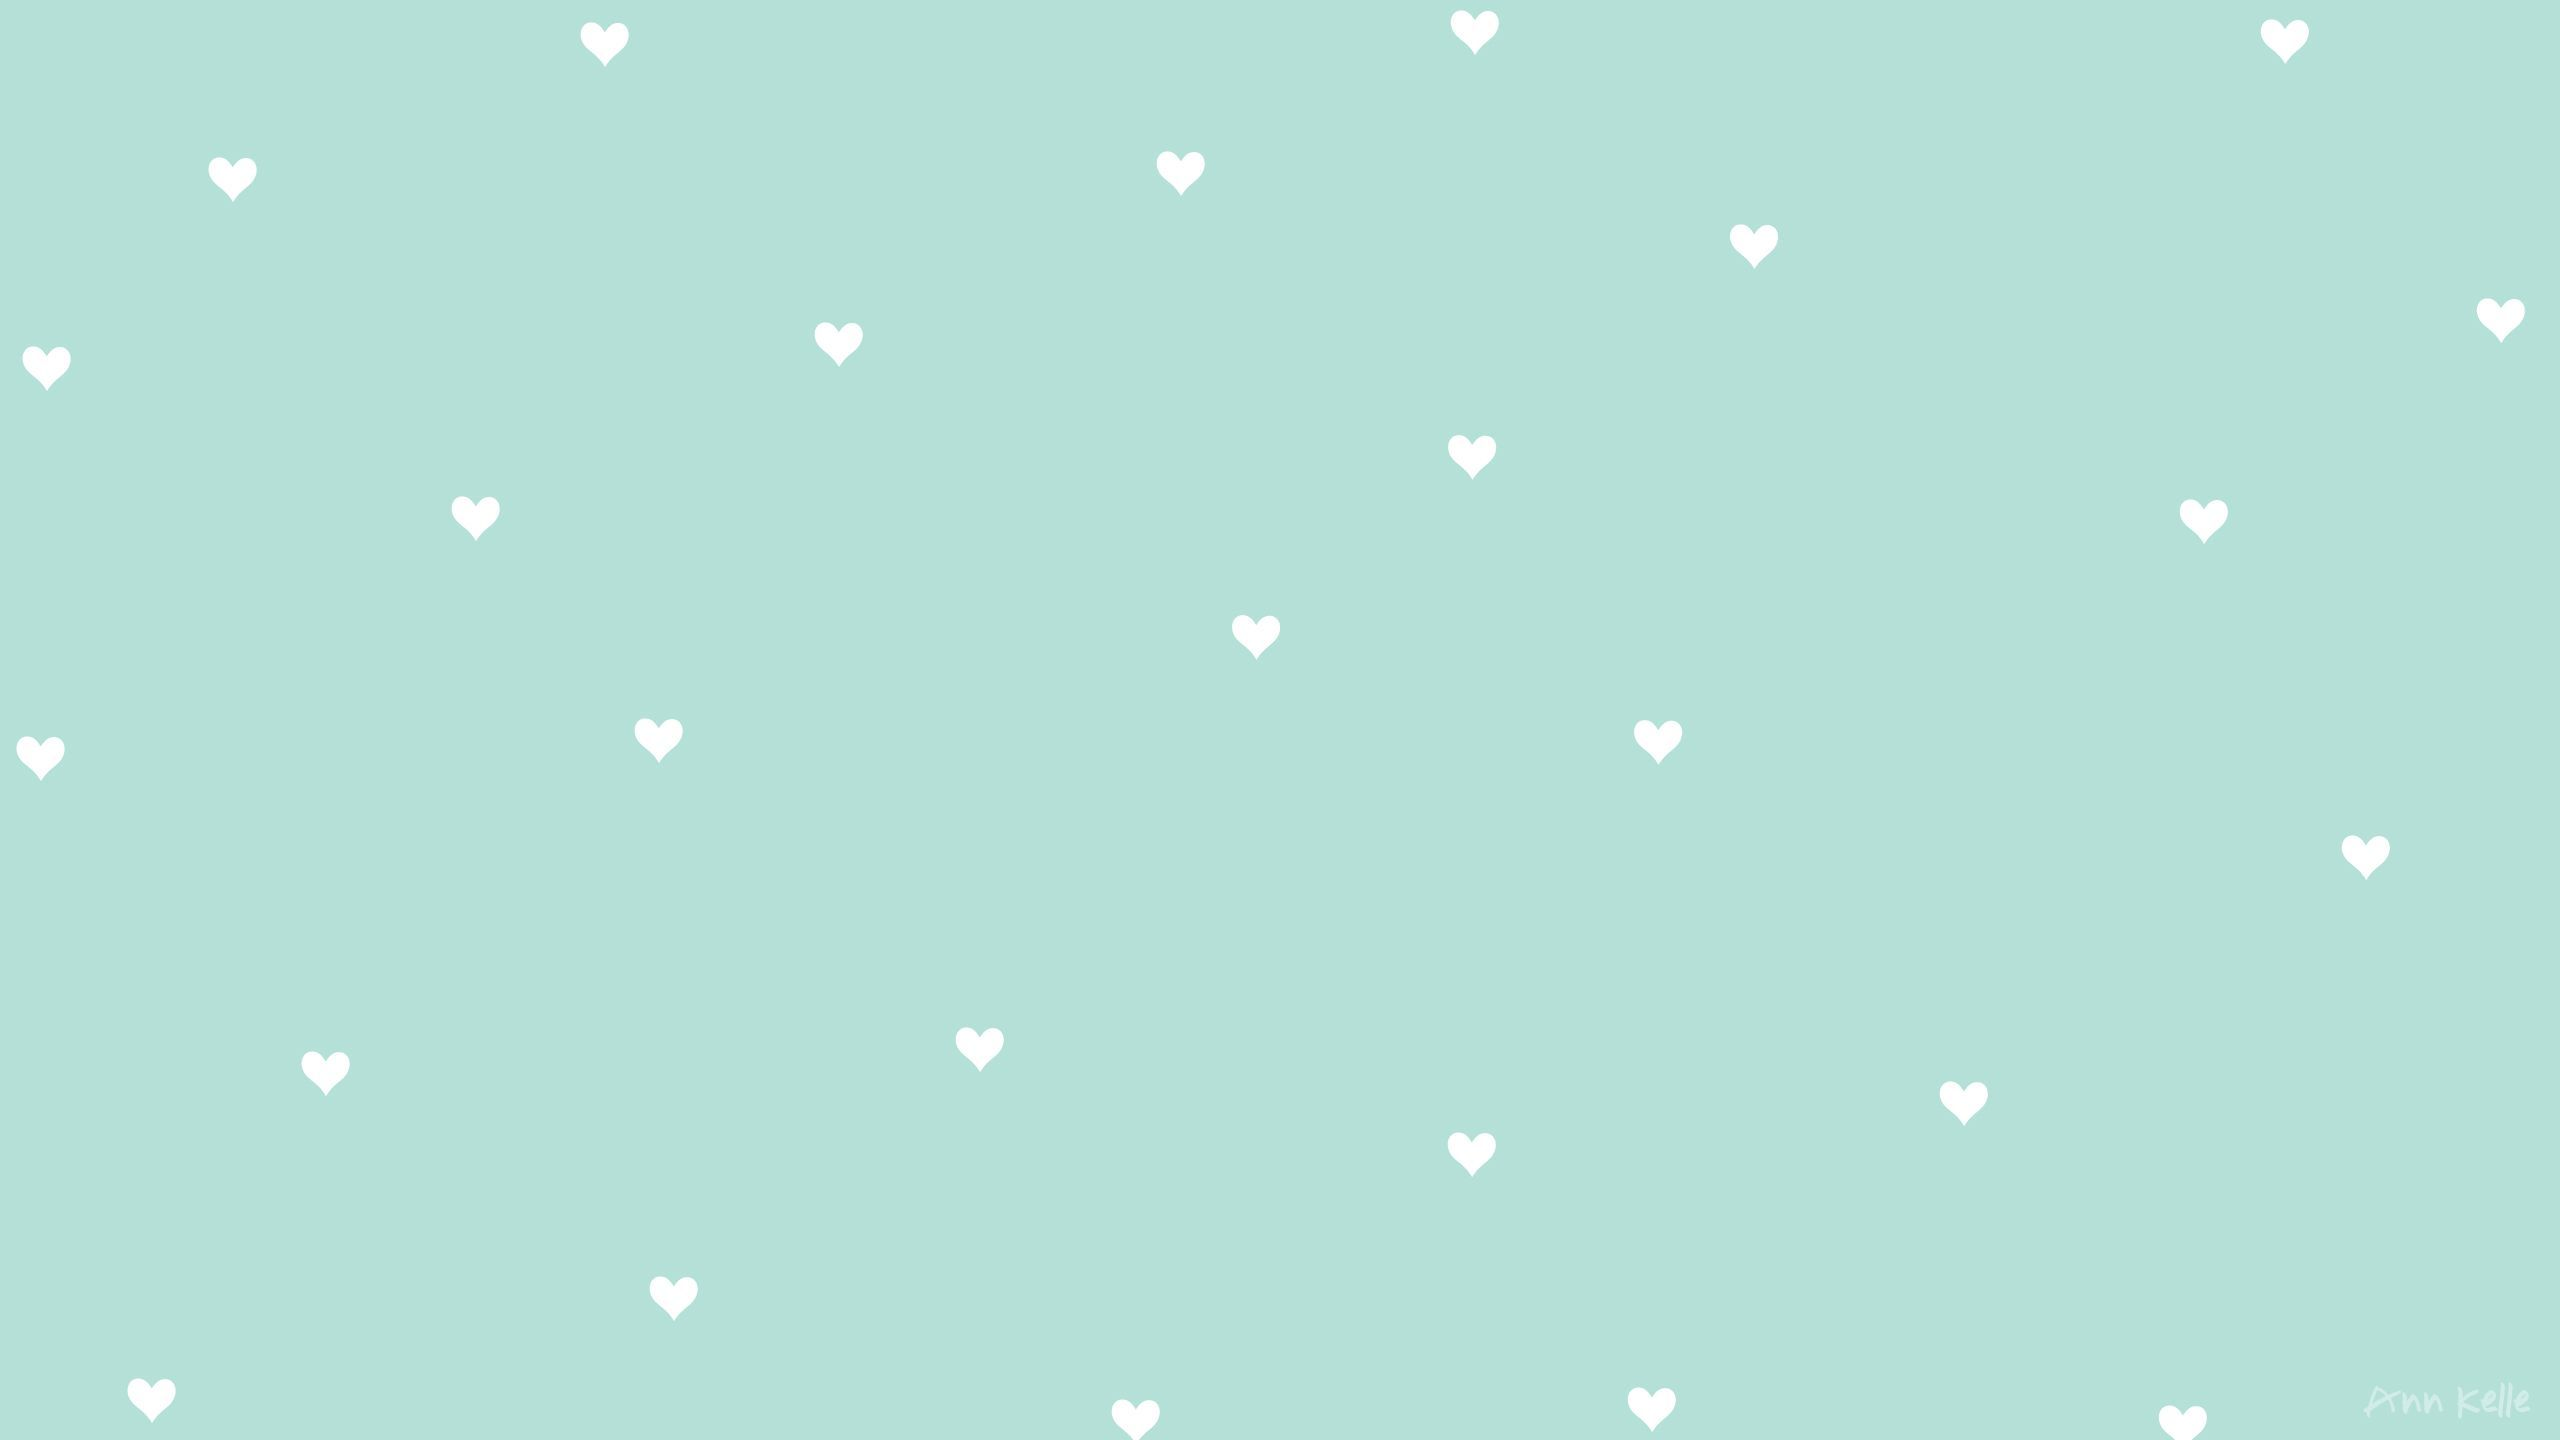 Cute Aesthetic Wallpapers Green